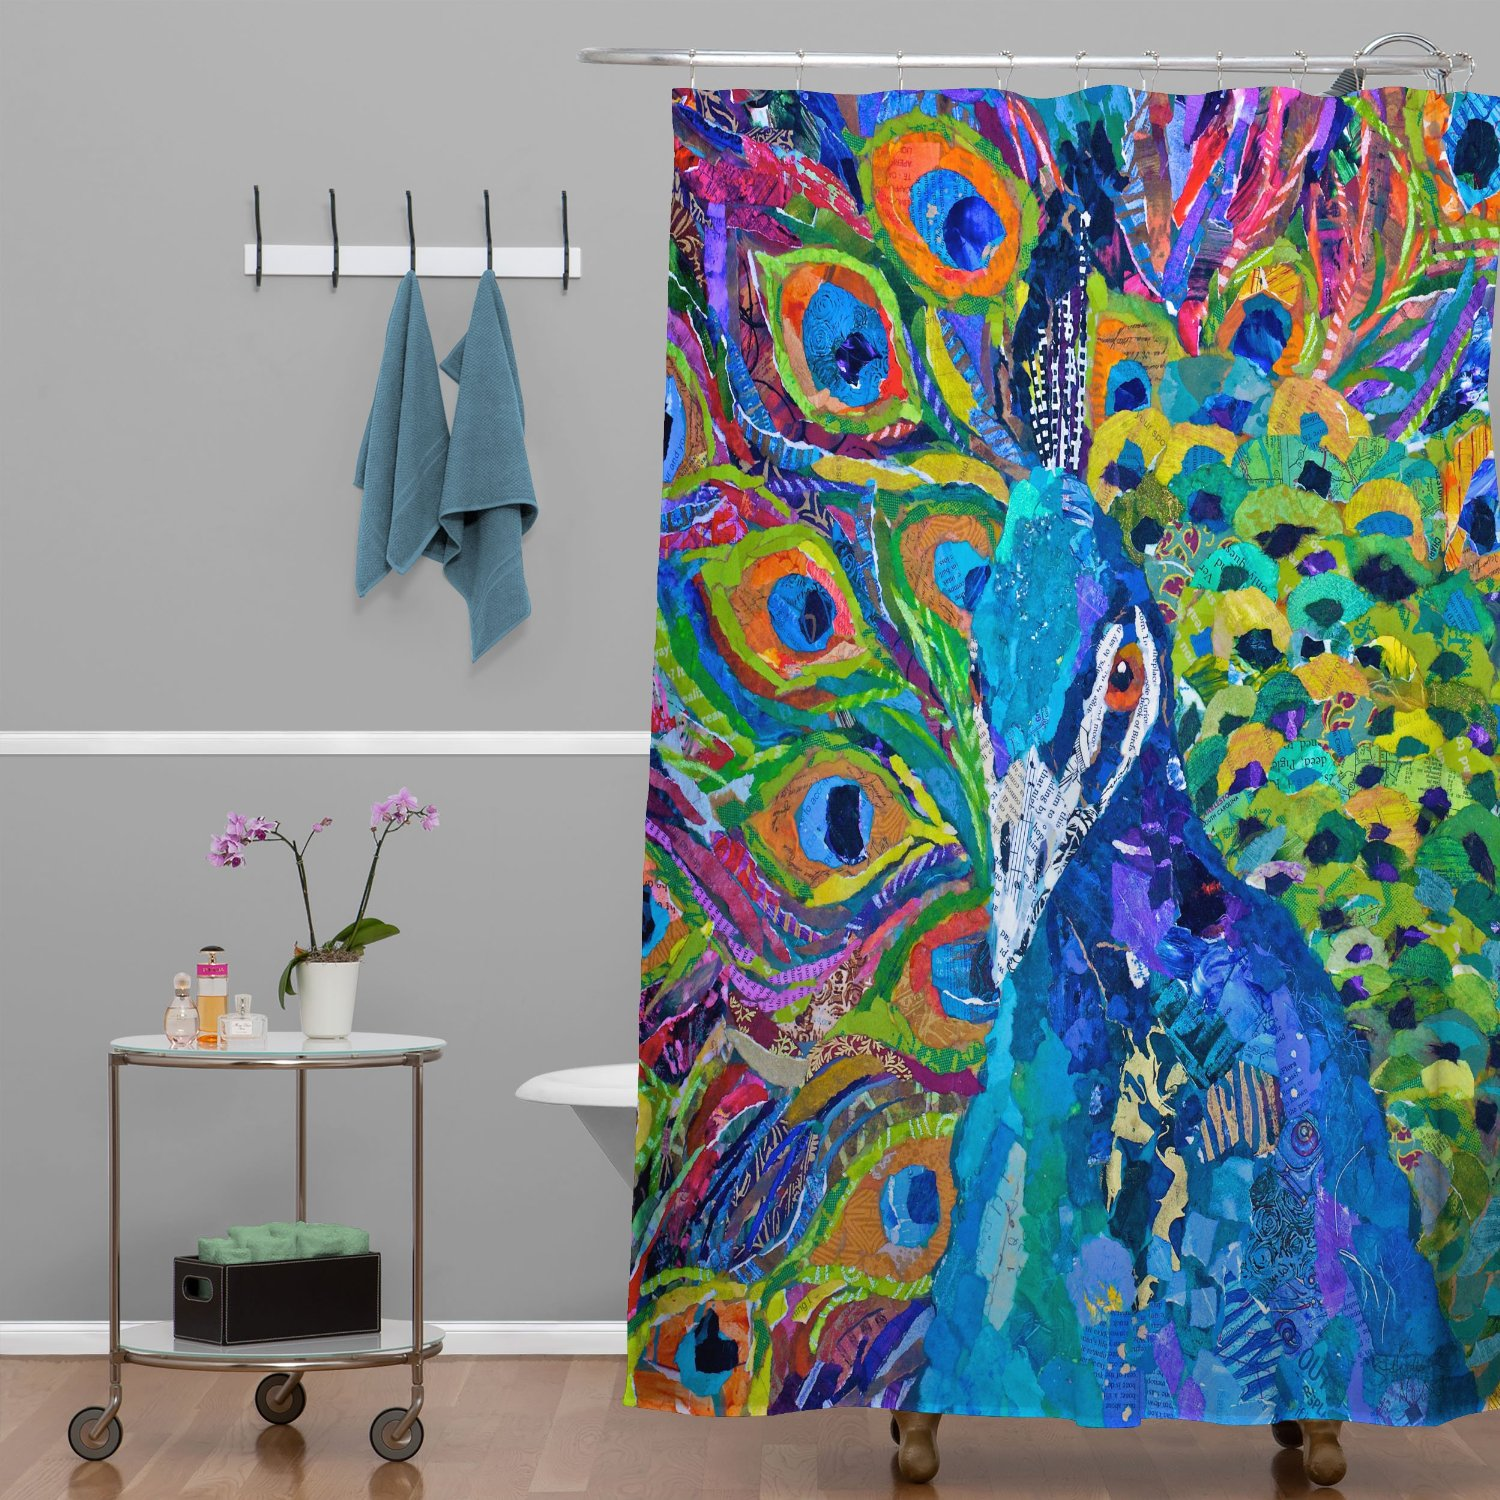 Total fab peacock themed bathroom decor accessories Nature inspired shower curtains